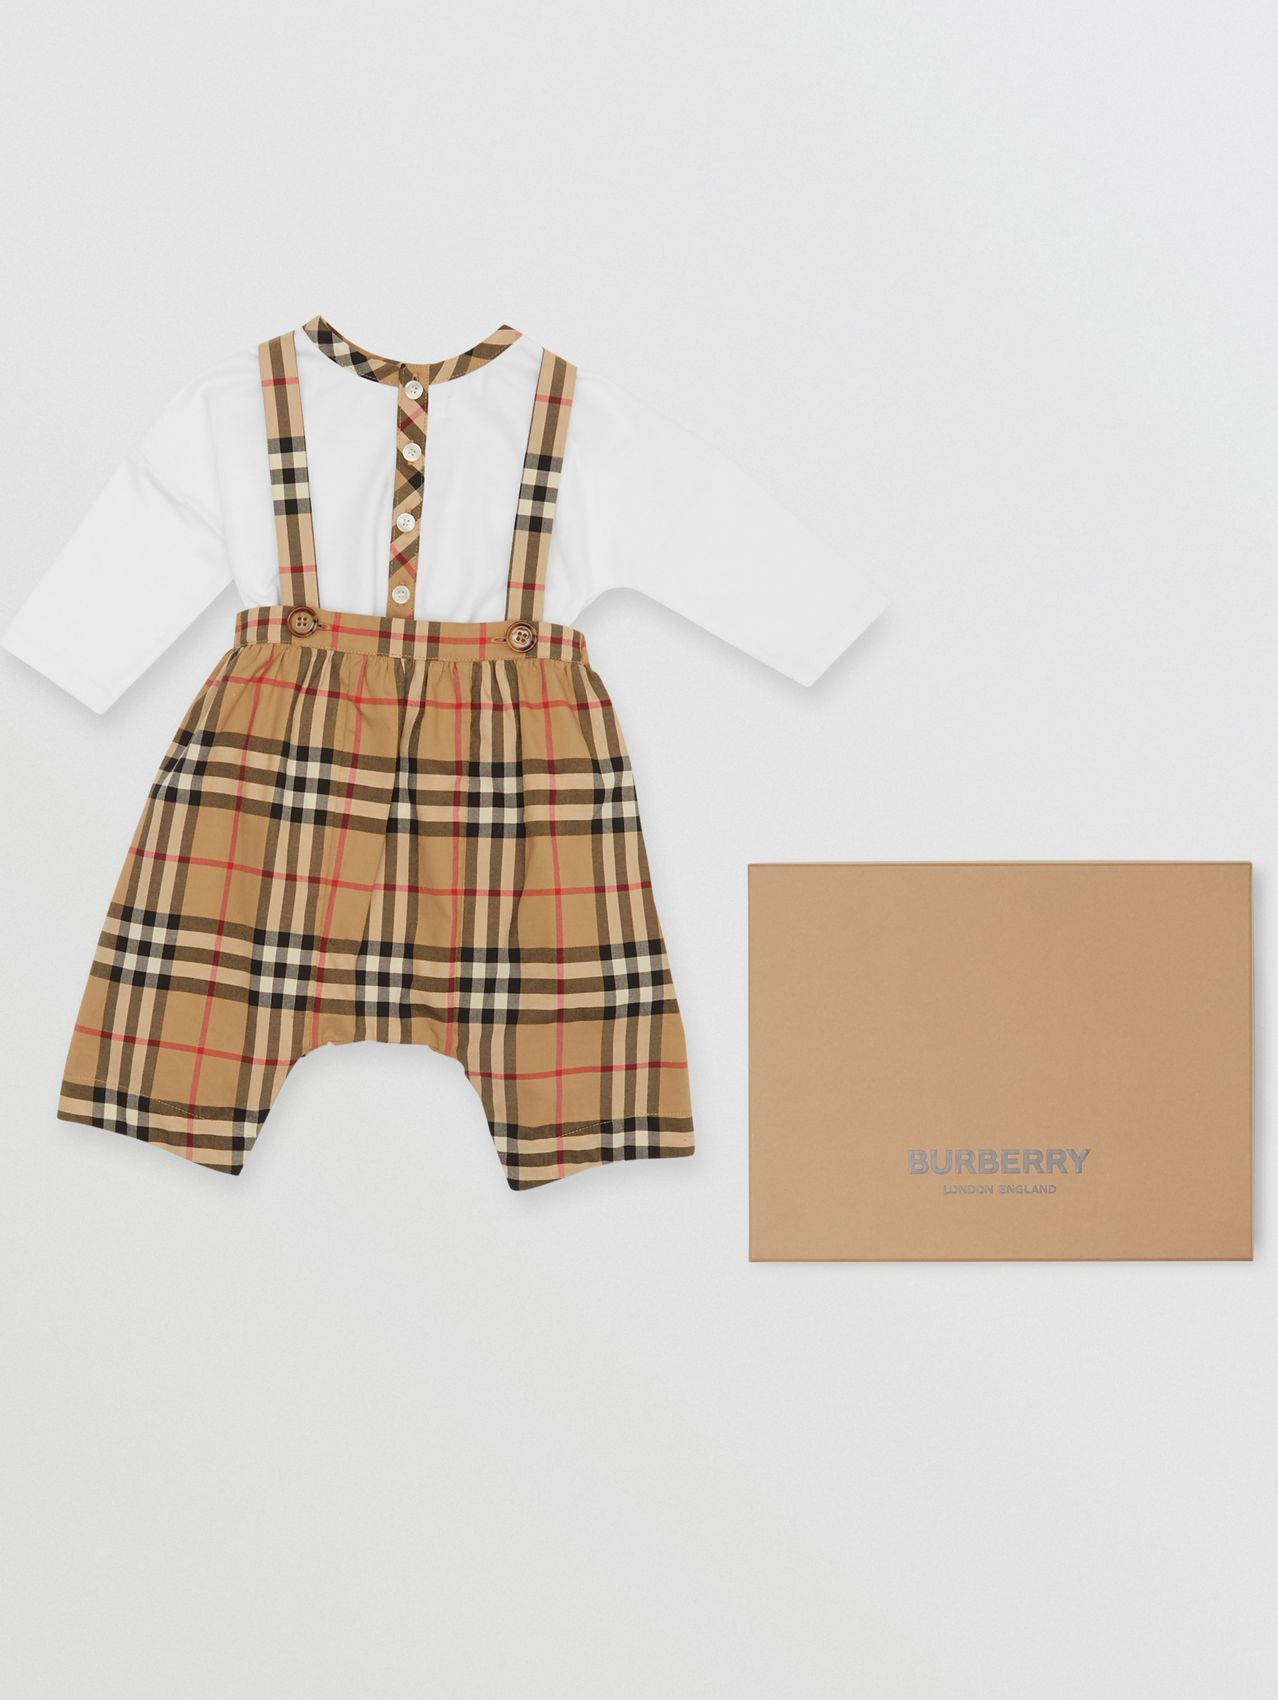 Vintage Check Cotton Two-piece Baby Gift Set in White